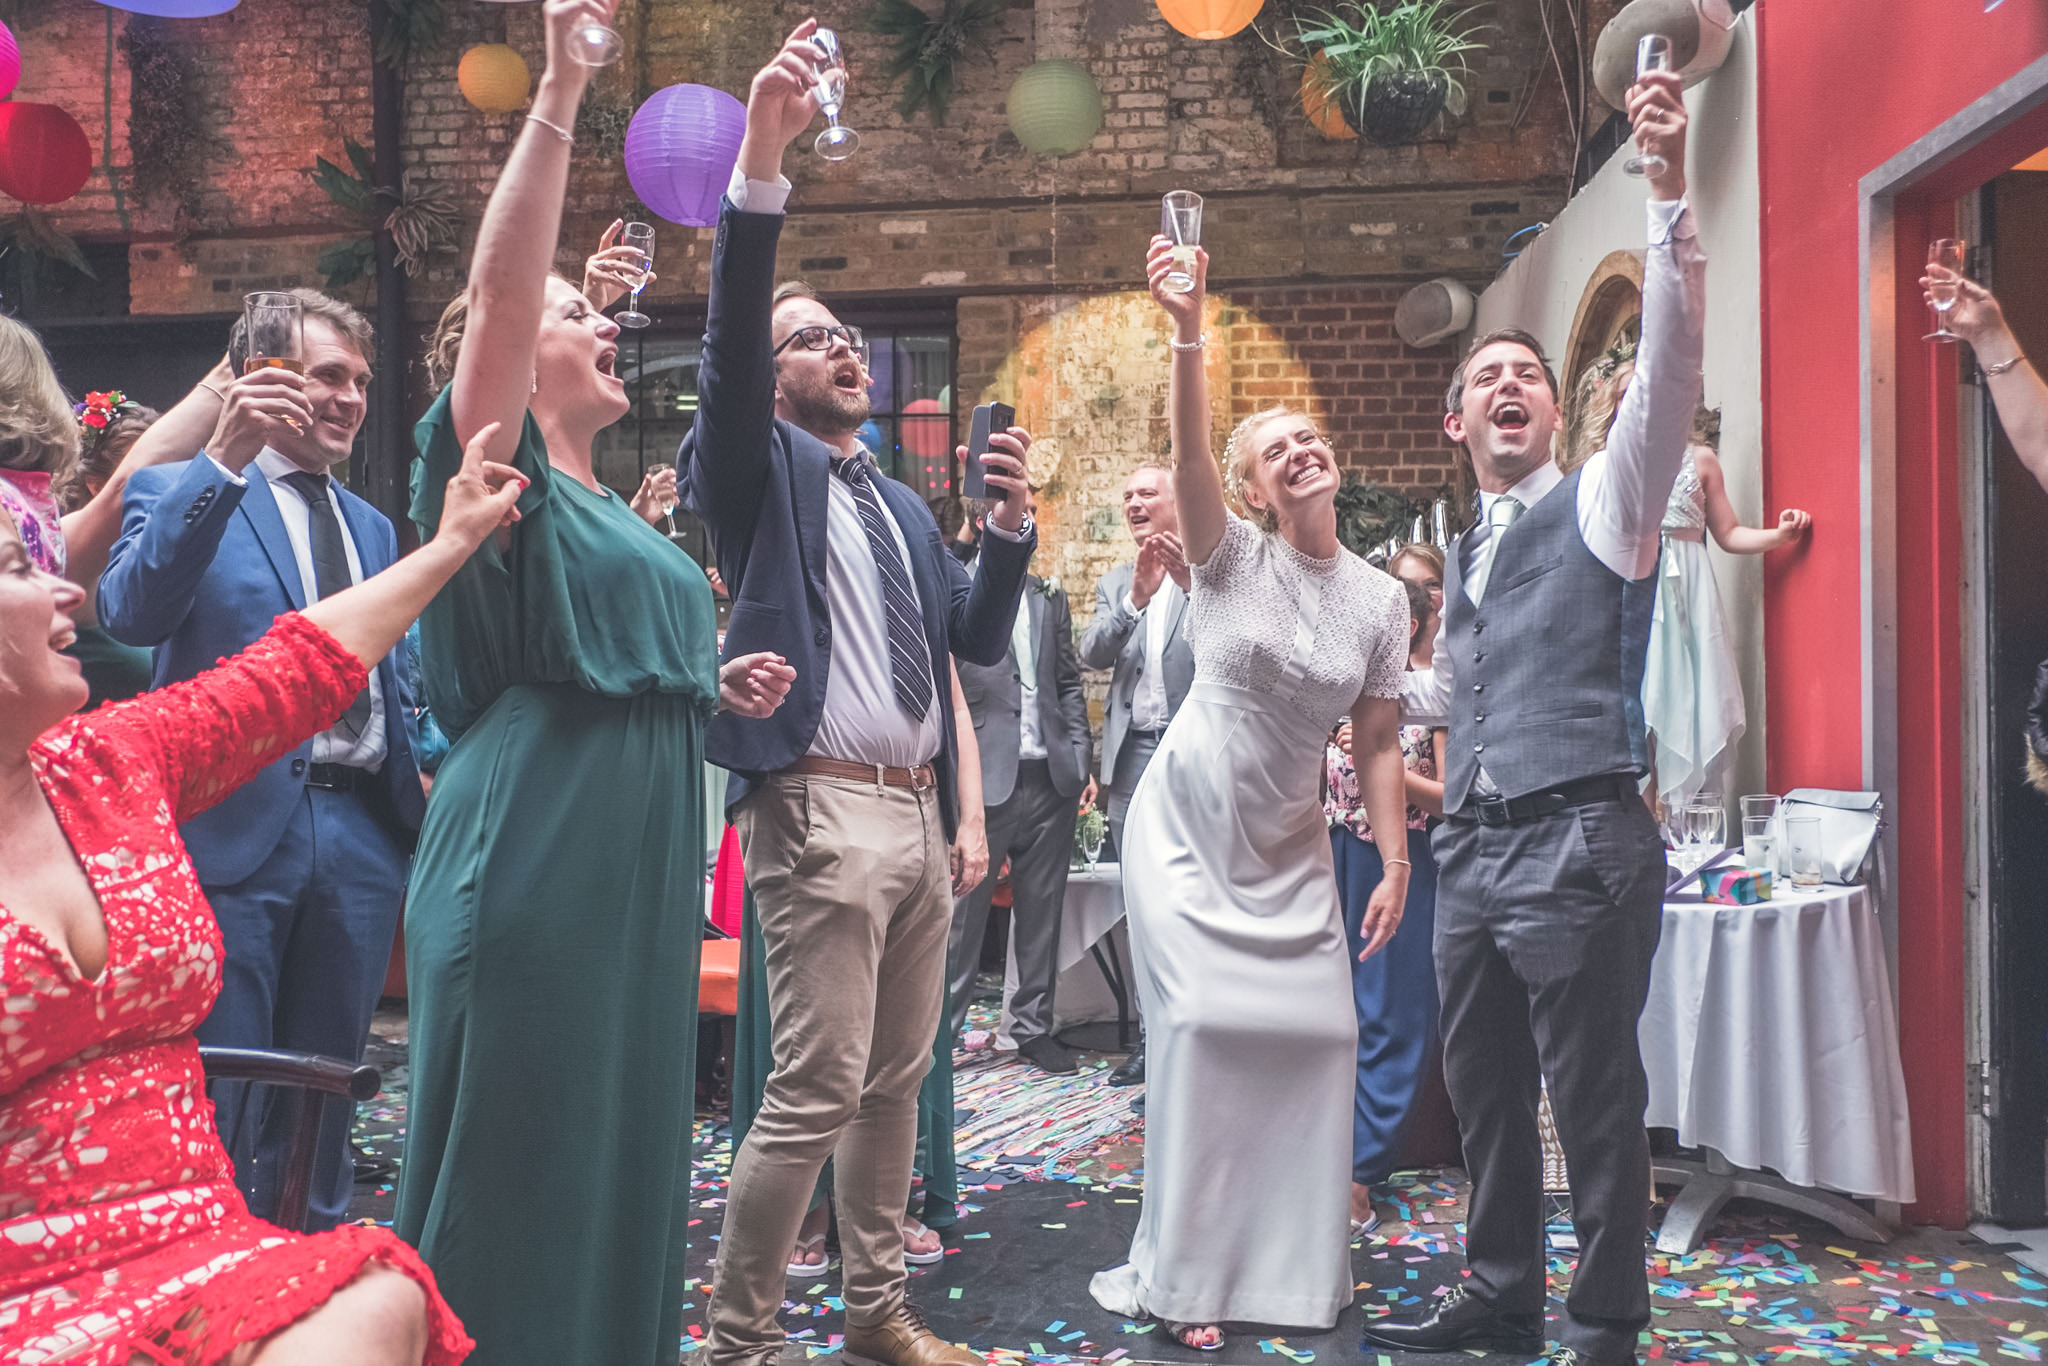 Healthcare Heroes - Free Wedding Shoot Up For Grabs